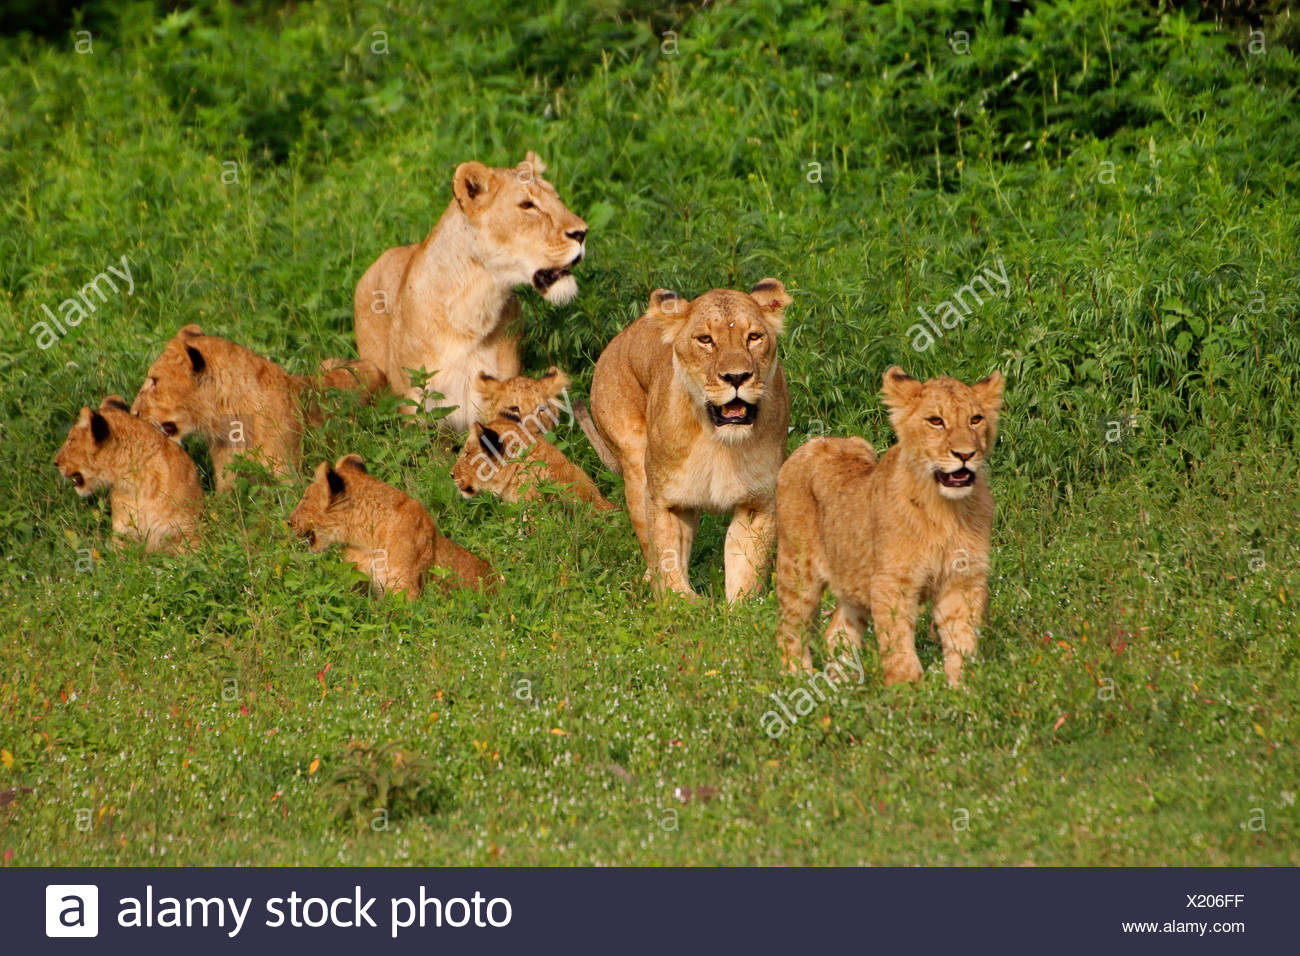 lion (Panthera leo), lionesses with young animals, Tanzania, Serengeti National Park - Stock Image